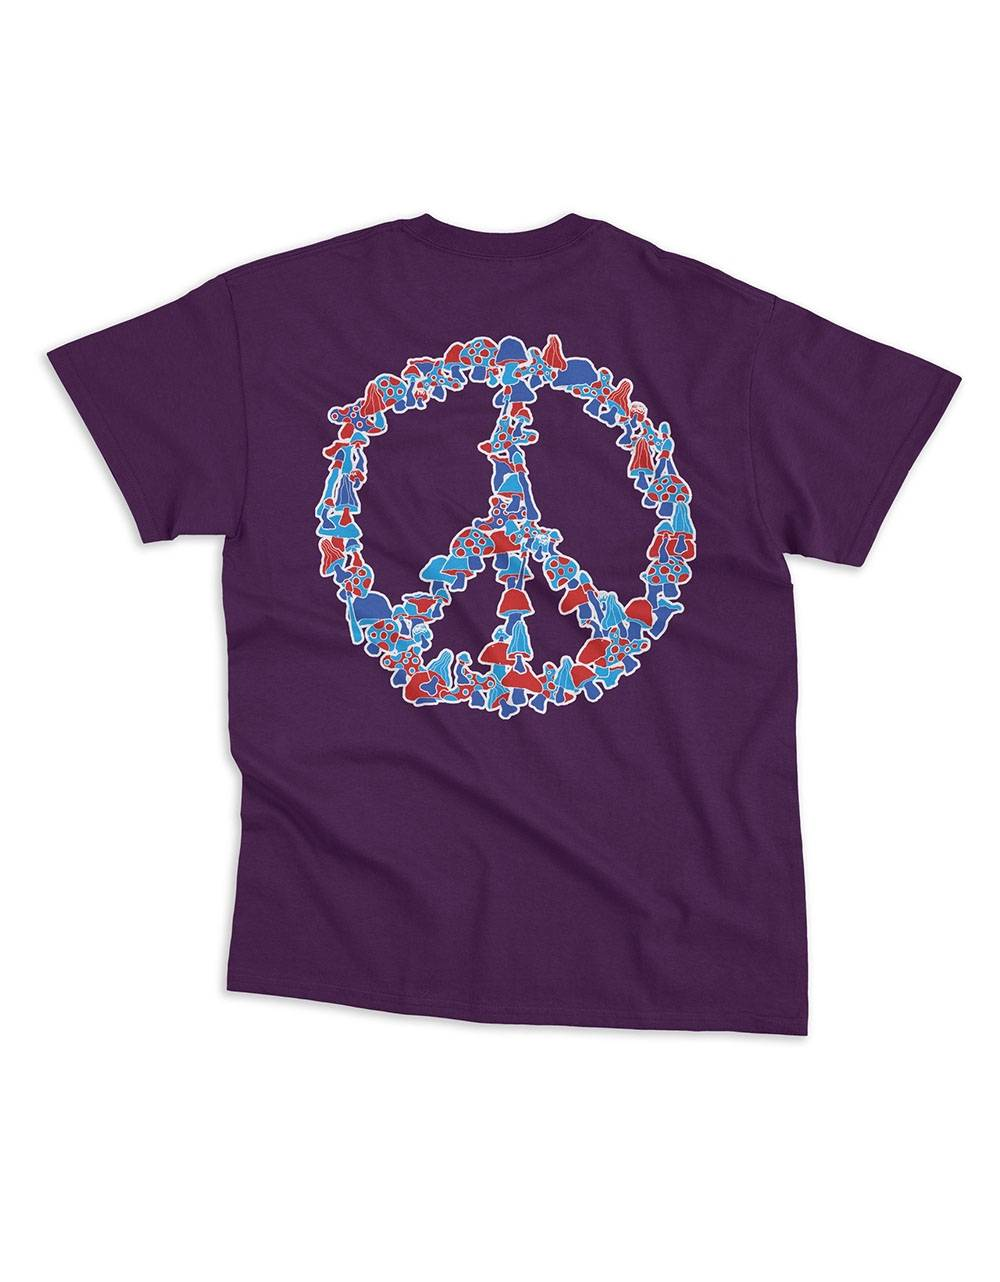 Nostalgia 1994 by Usual Peace tee - purple Usual T-shirt 36,89€